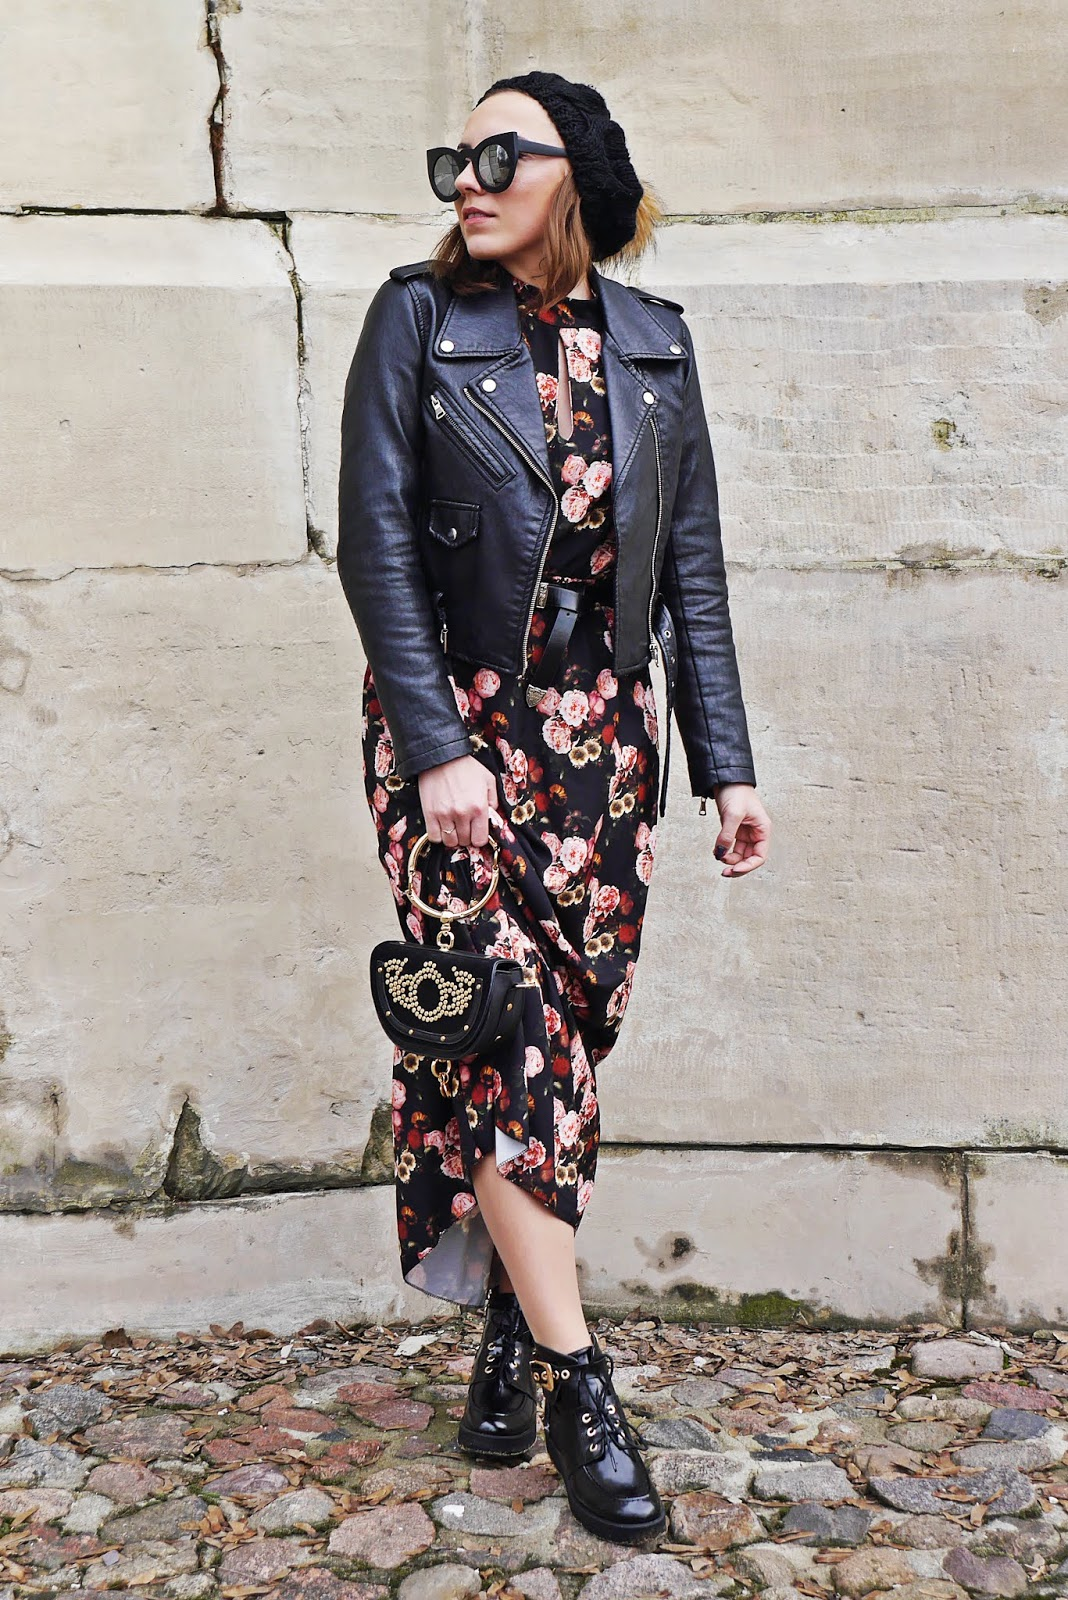 floral dress rock boots biker jacket outfit look karyn fashion blogger